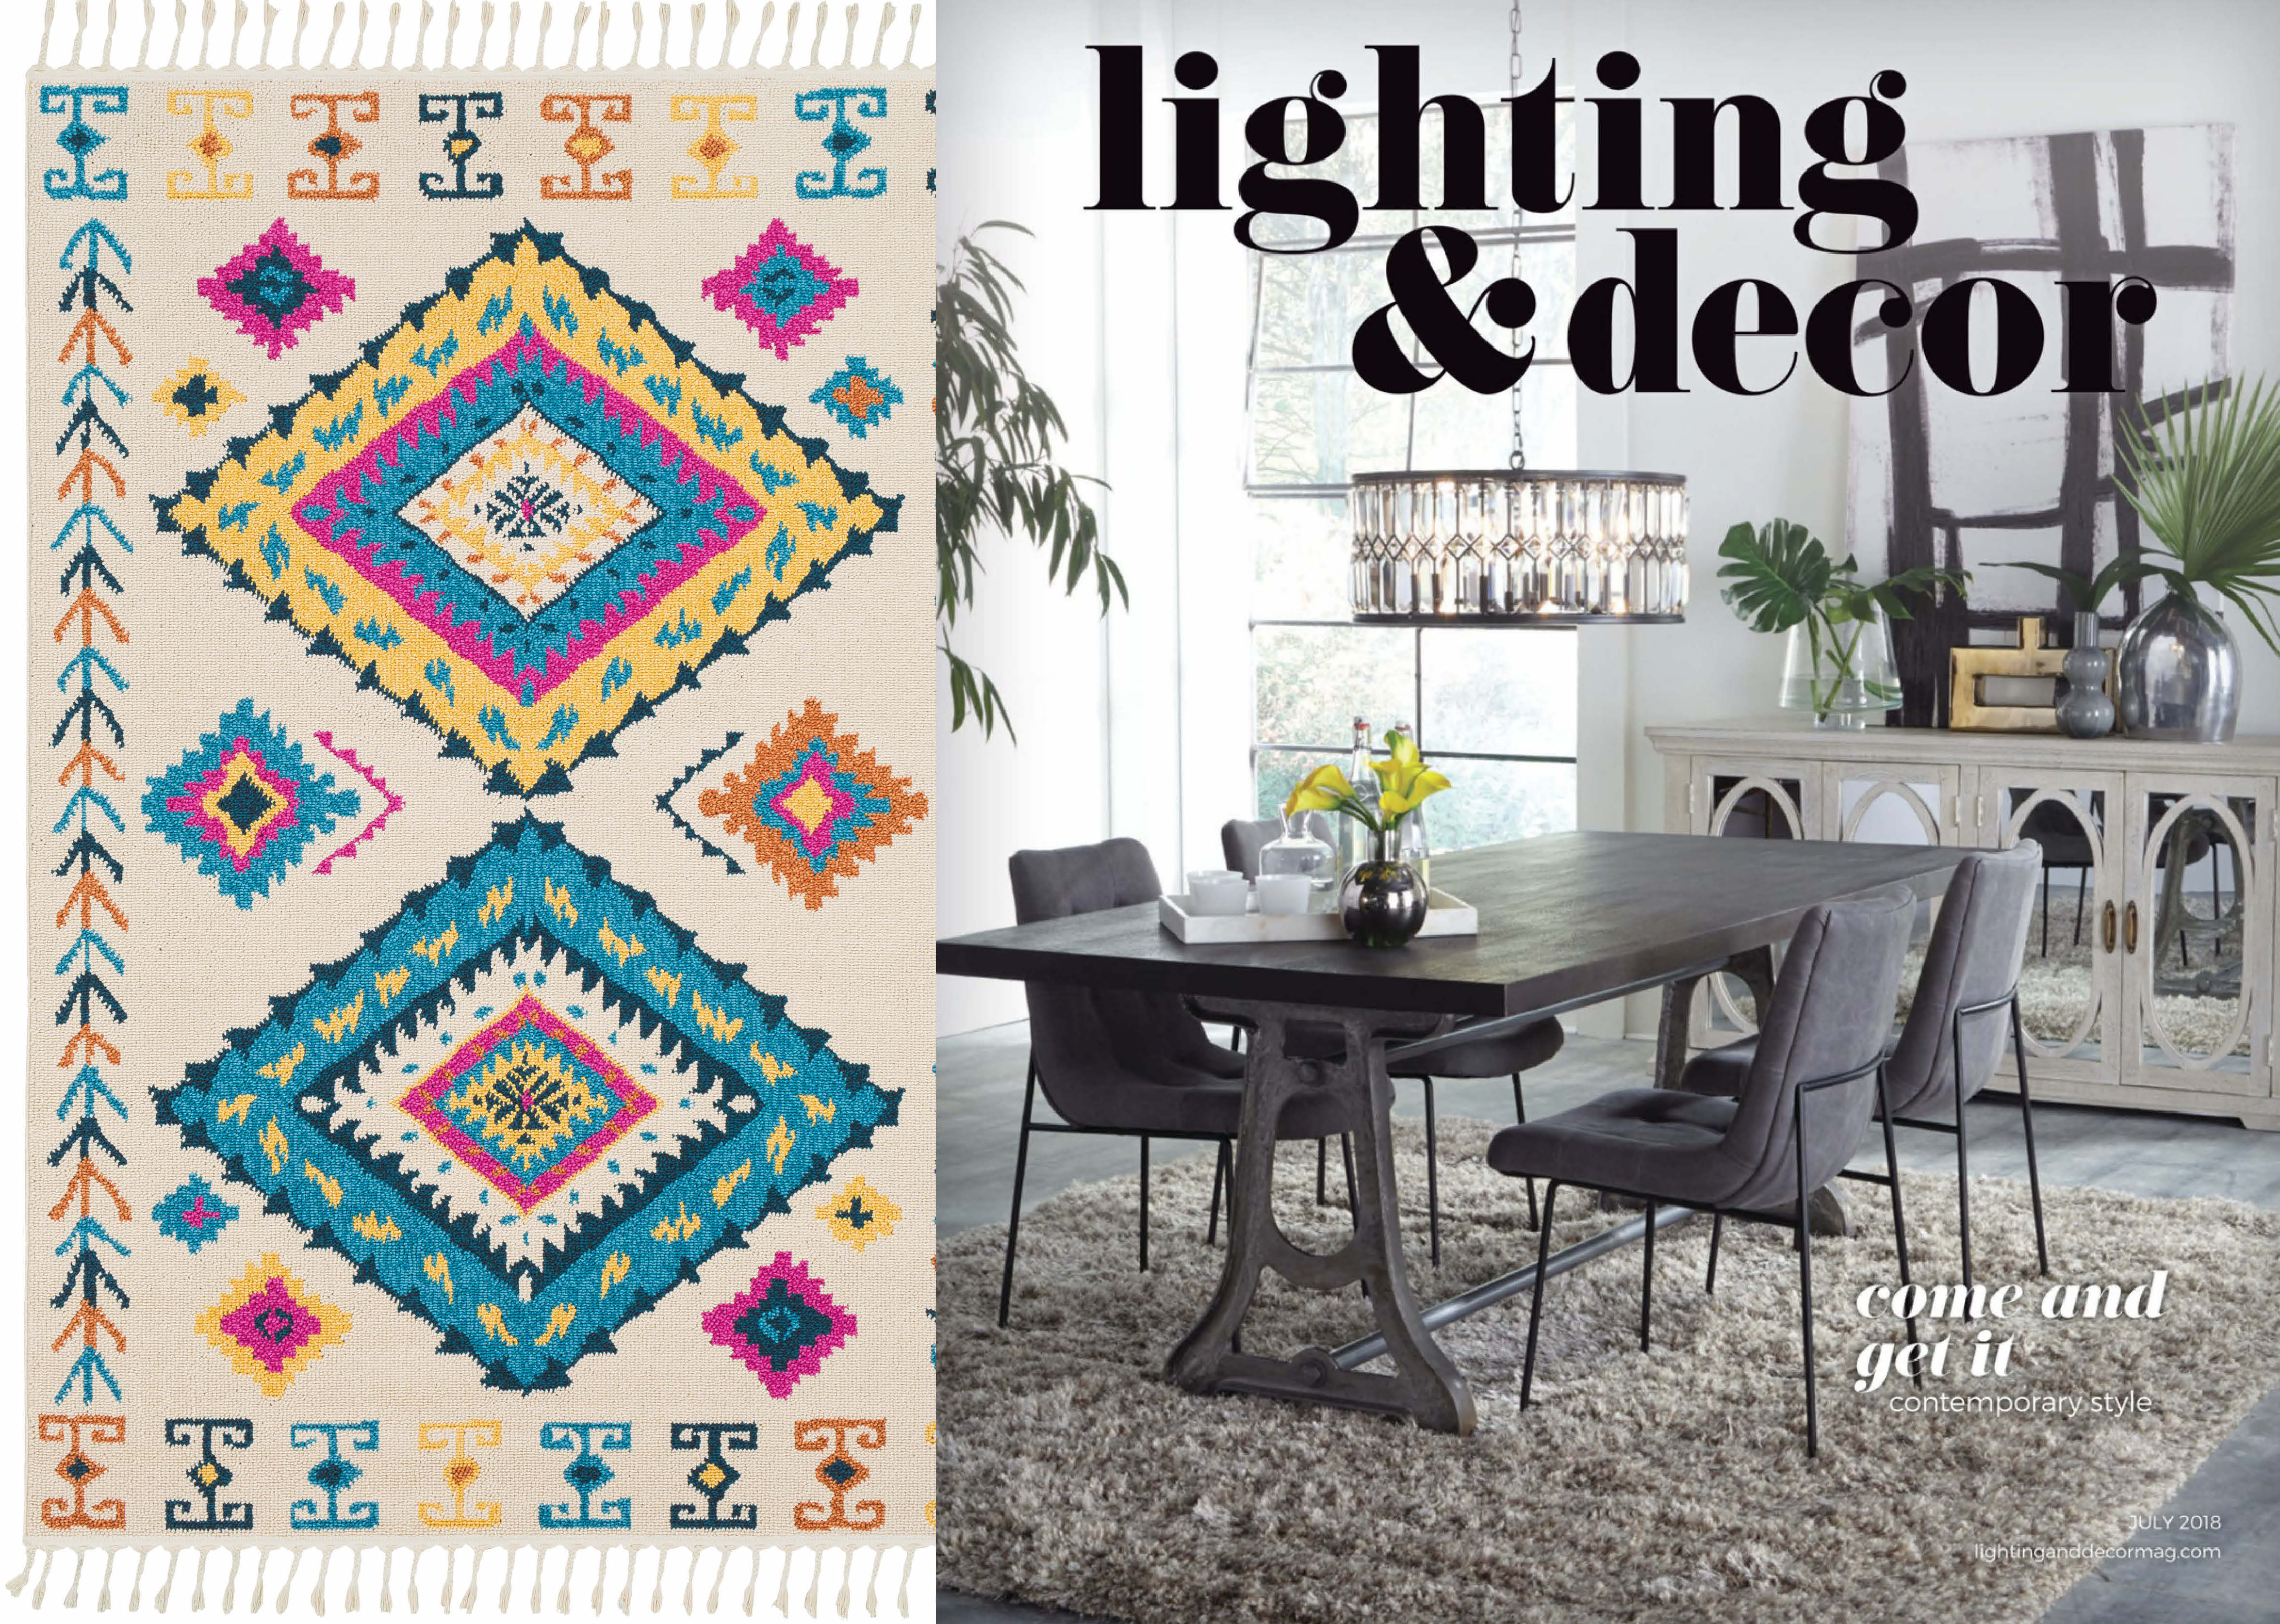 Lighting Decor Spotlights How Tels And Fringe Have Transitioned From The Fashion Runways To Home Showrooms With Surya S Love Rug As A Prime